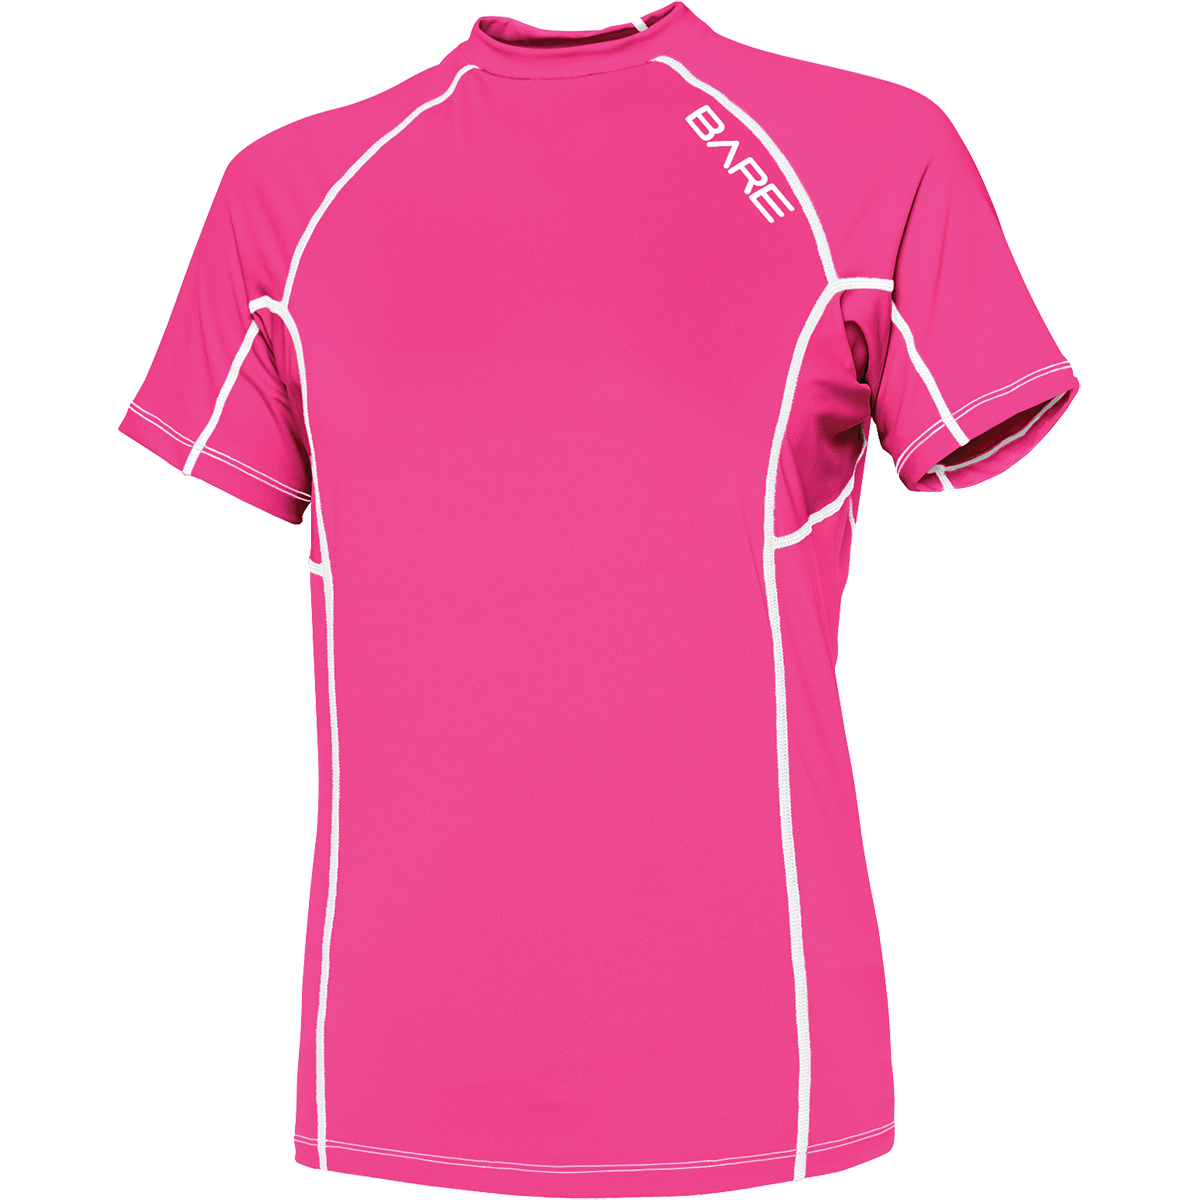 Sunguard, Short Sleeve - Women